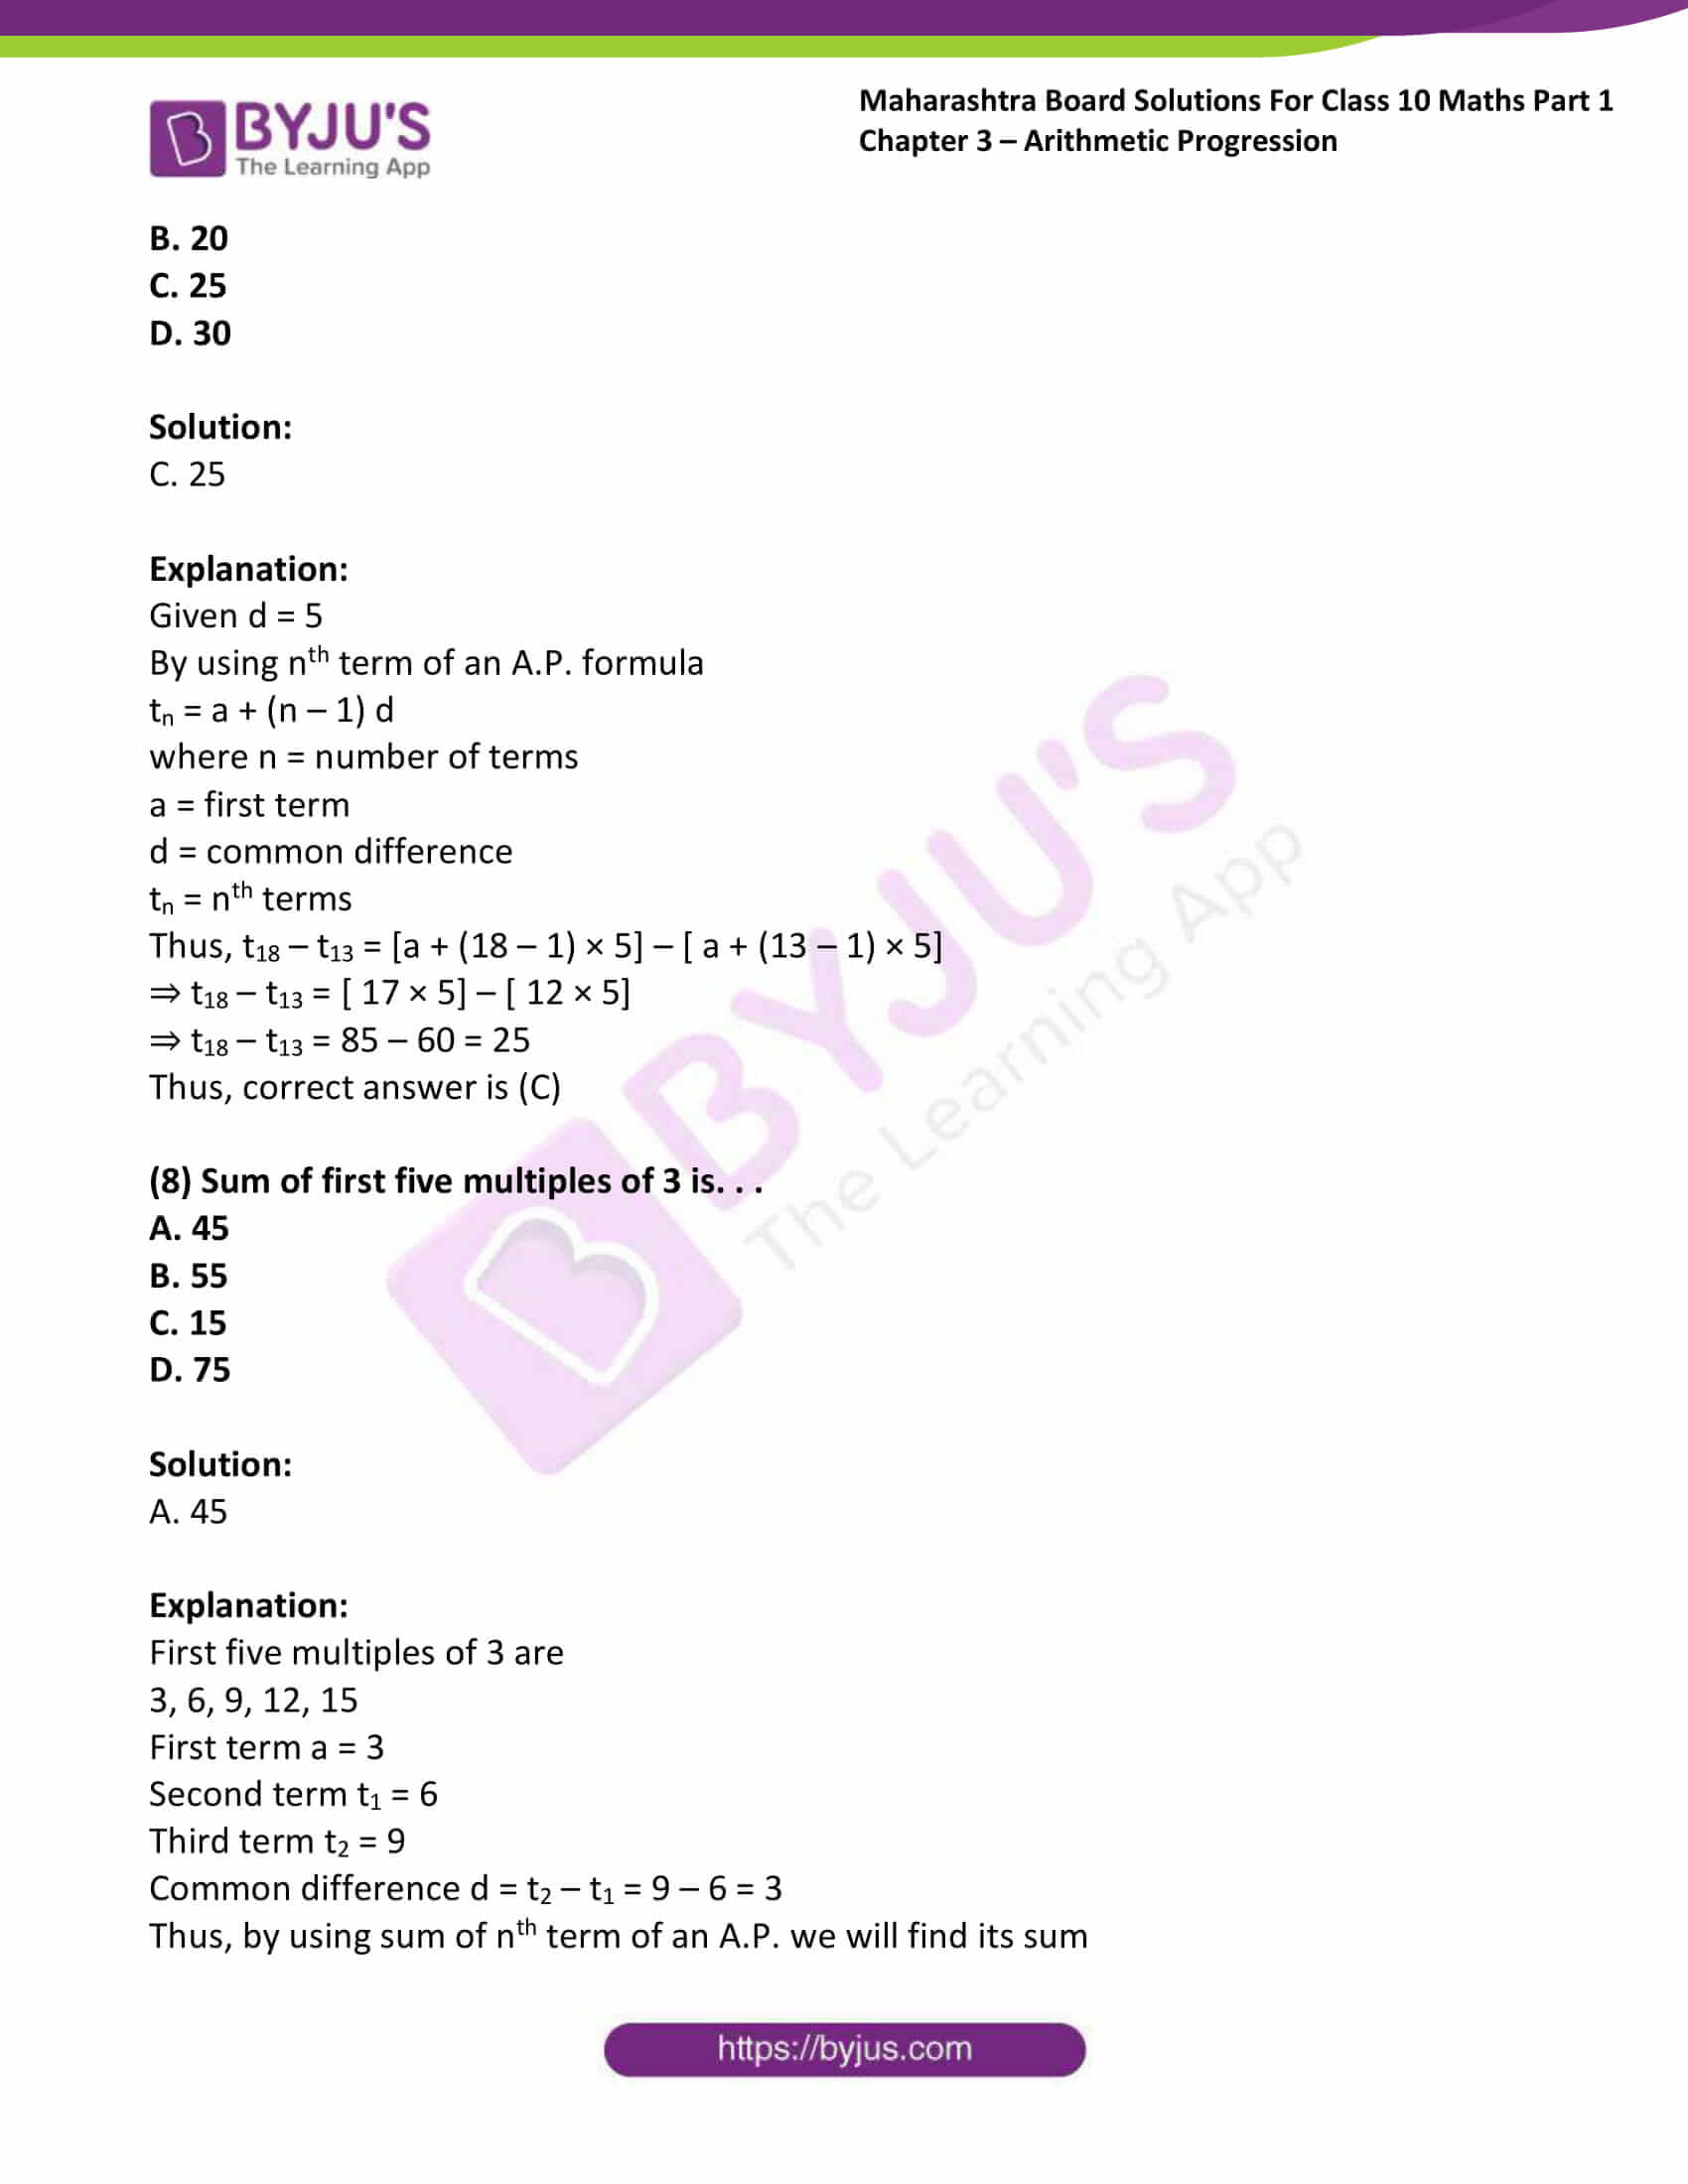 msbshse solutions class 10 maths part 1 chapter 3 35